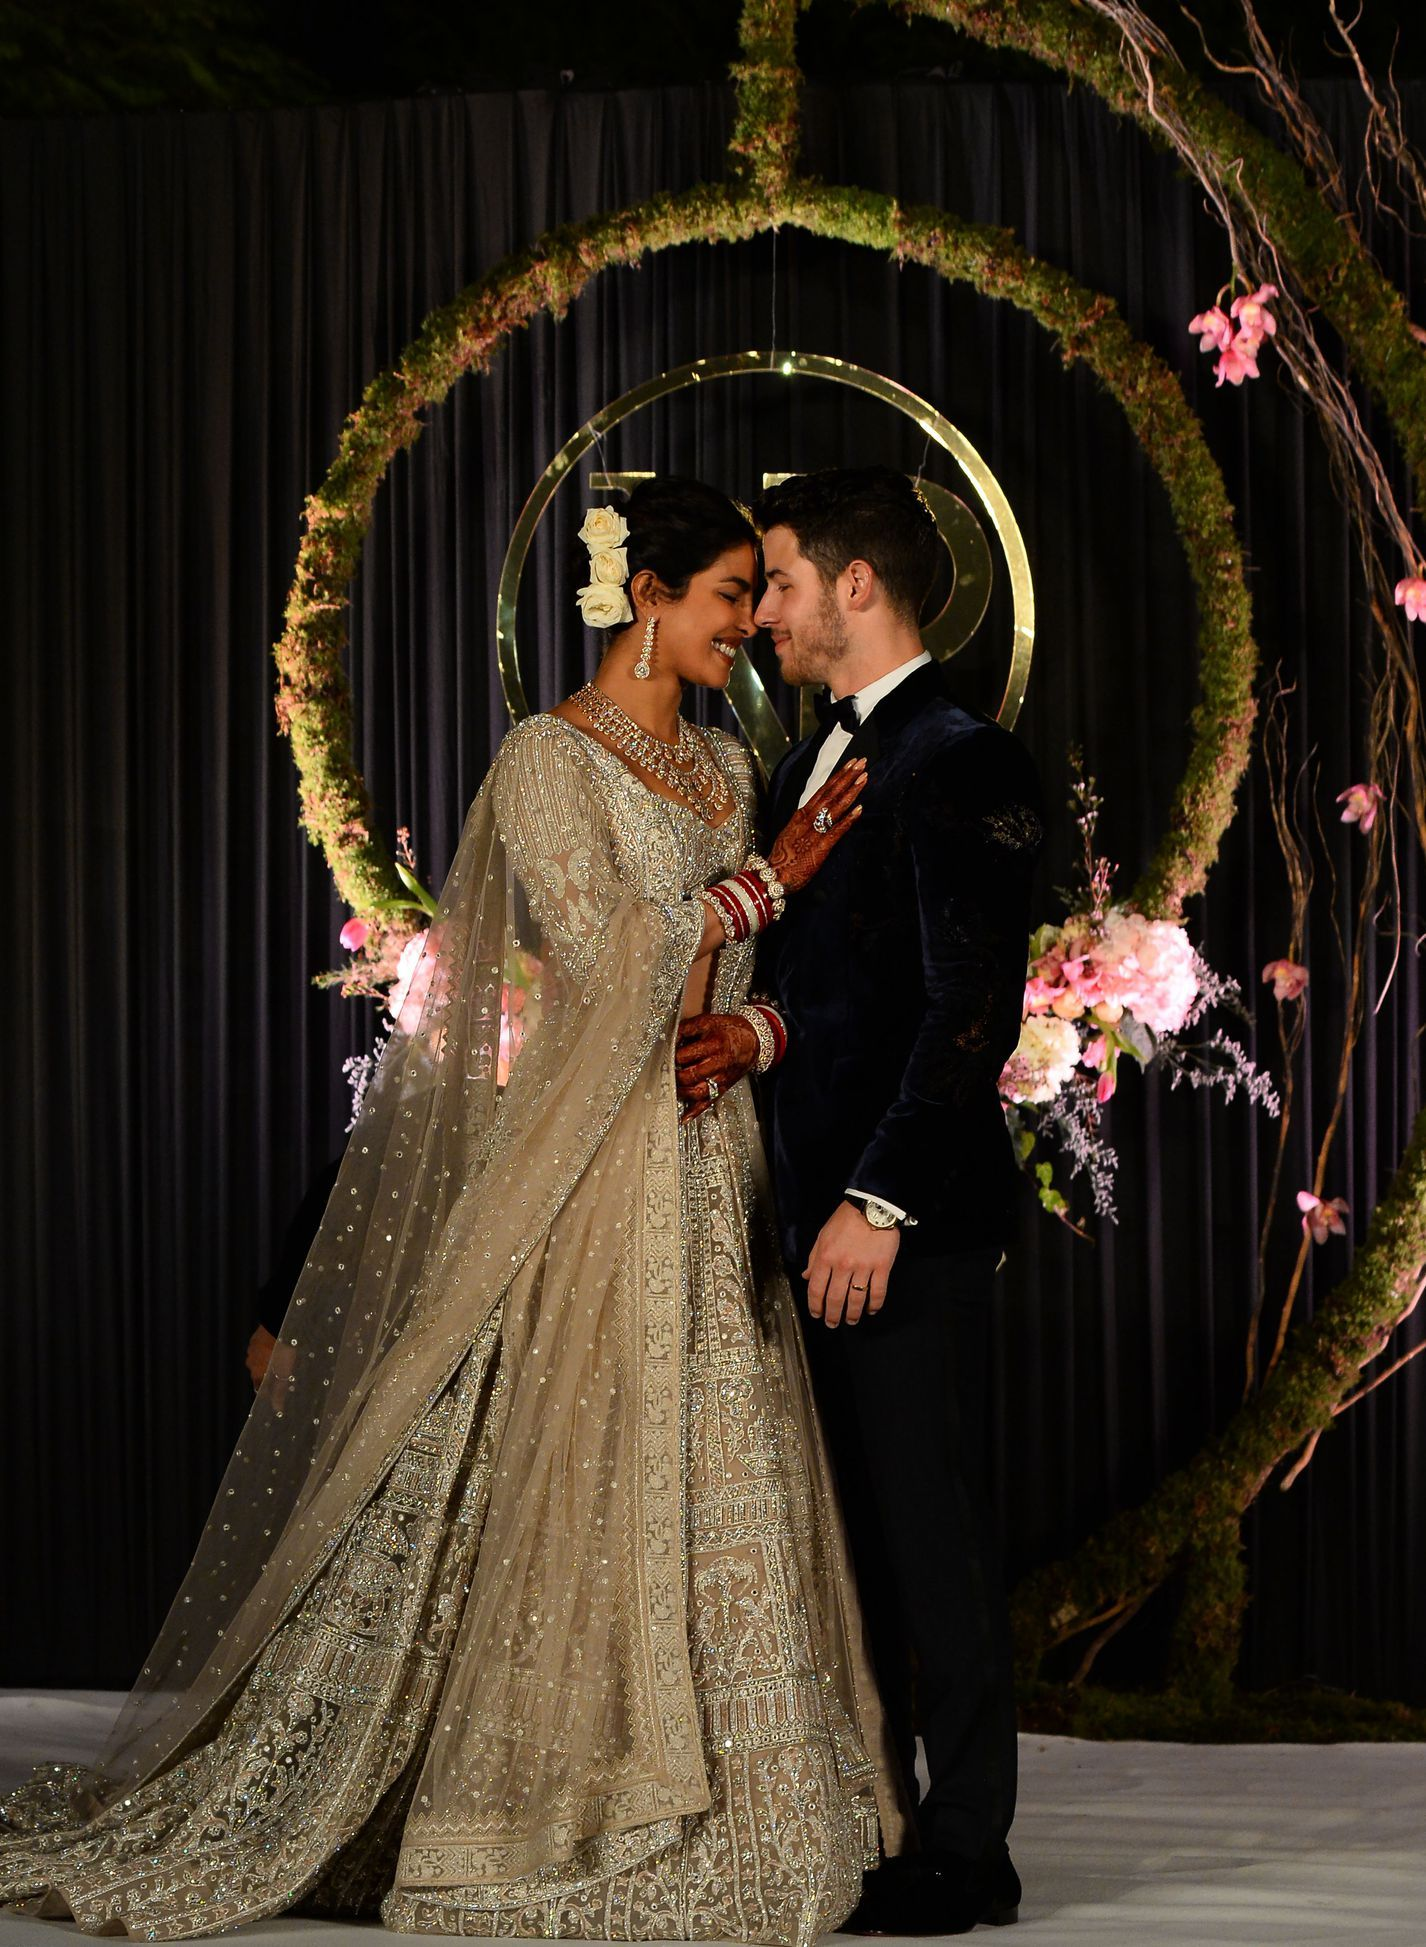 Priyanka Chopra Nick Jonas Wedding Guide To Date Venue Dress